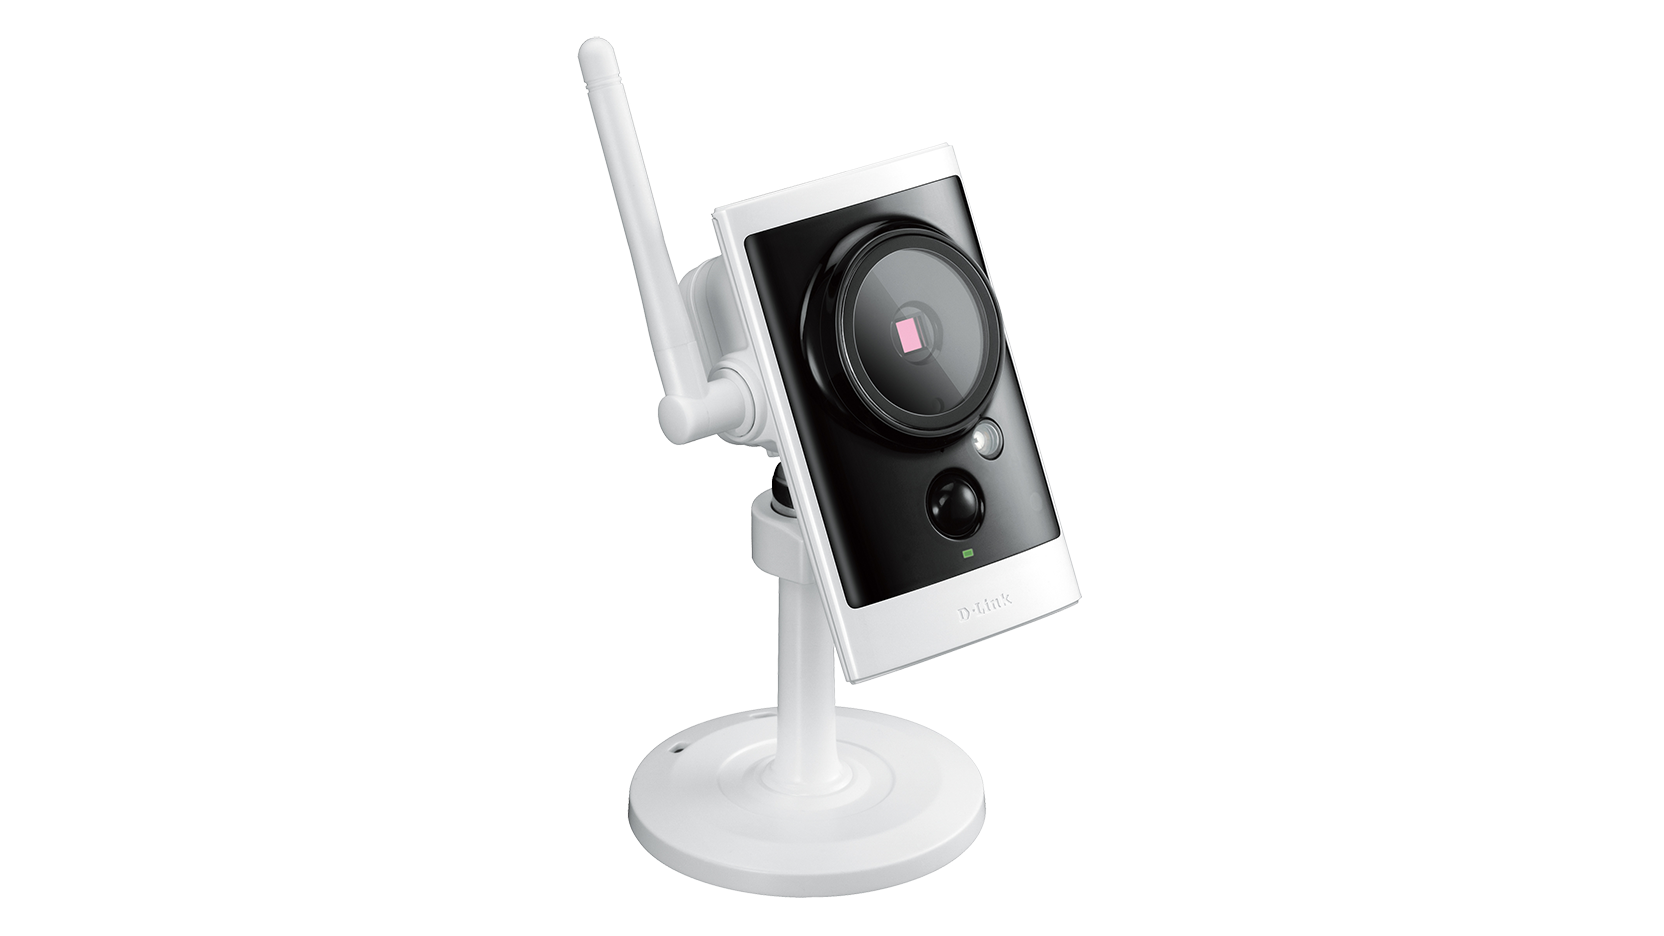 DCS-2330L HD Wireless N Day/Night Outdoor Cloud Camera | D-Link ...